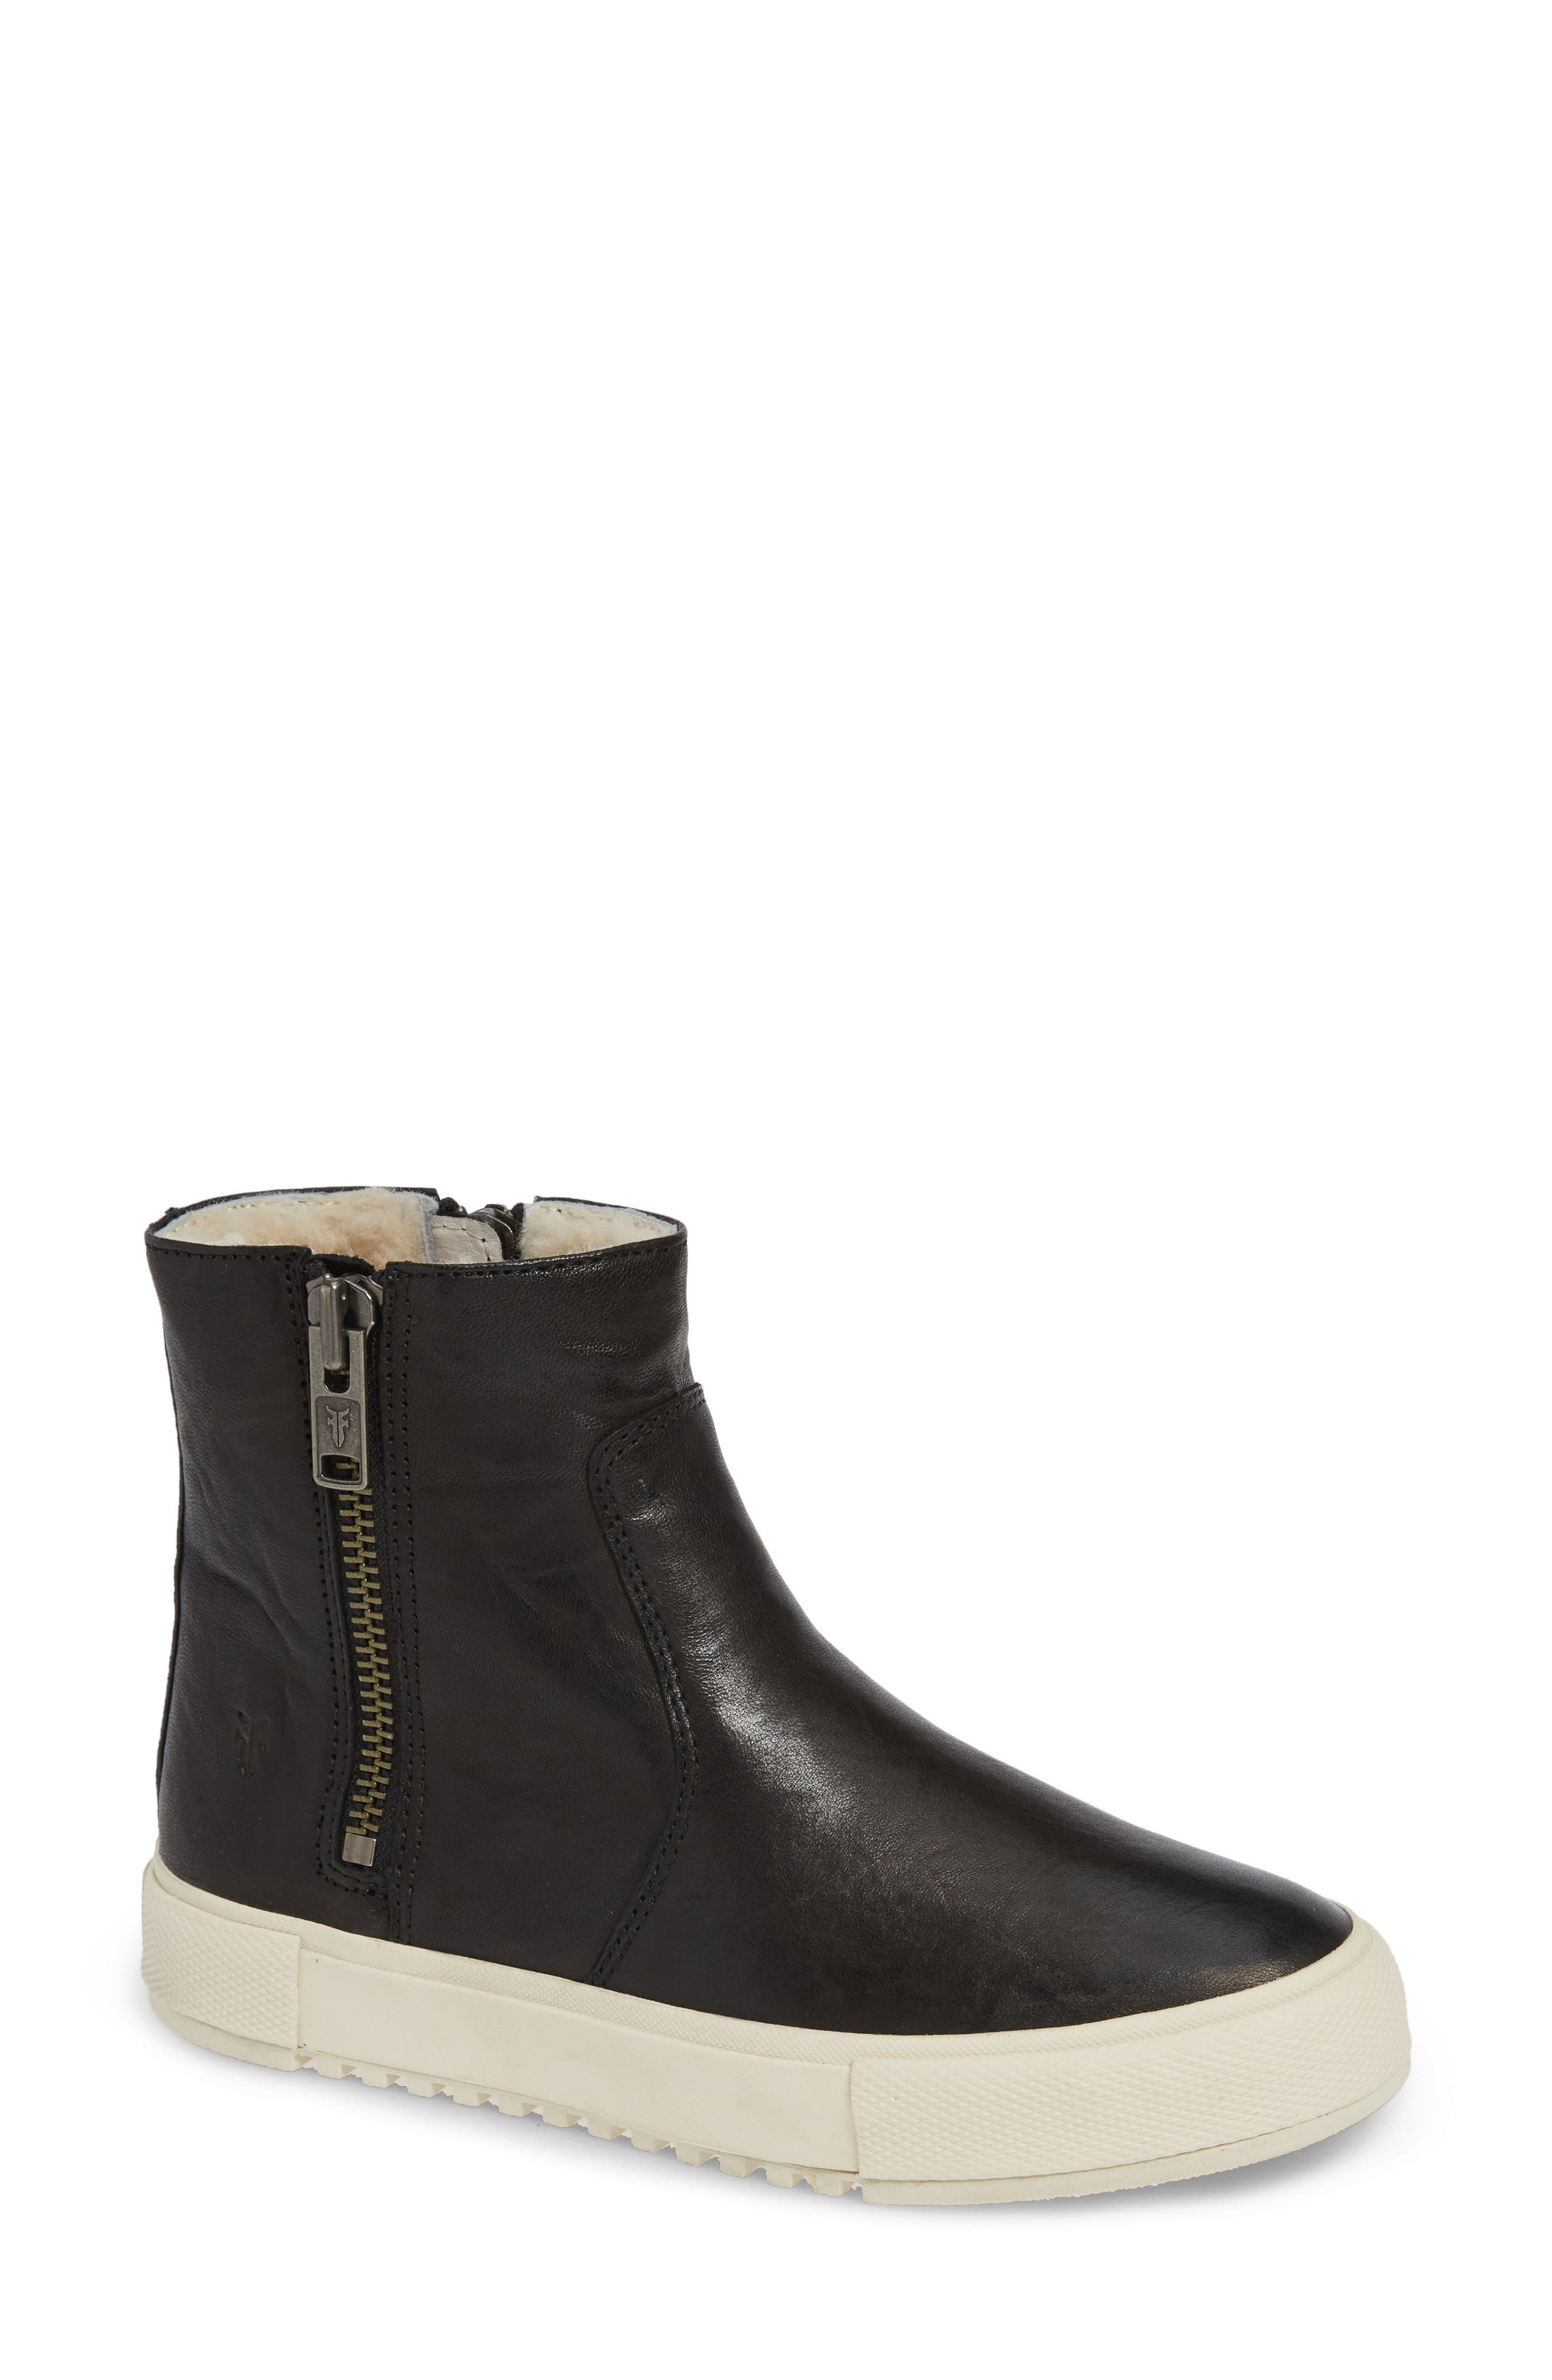 Gia Shearling-Lined Leather High-Top Boots in Black Leather